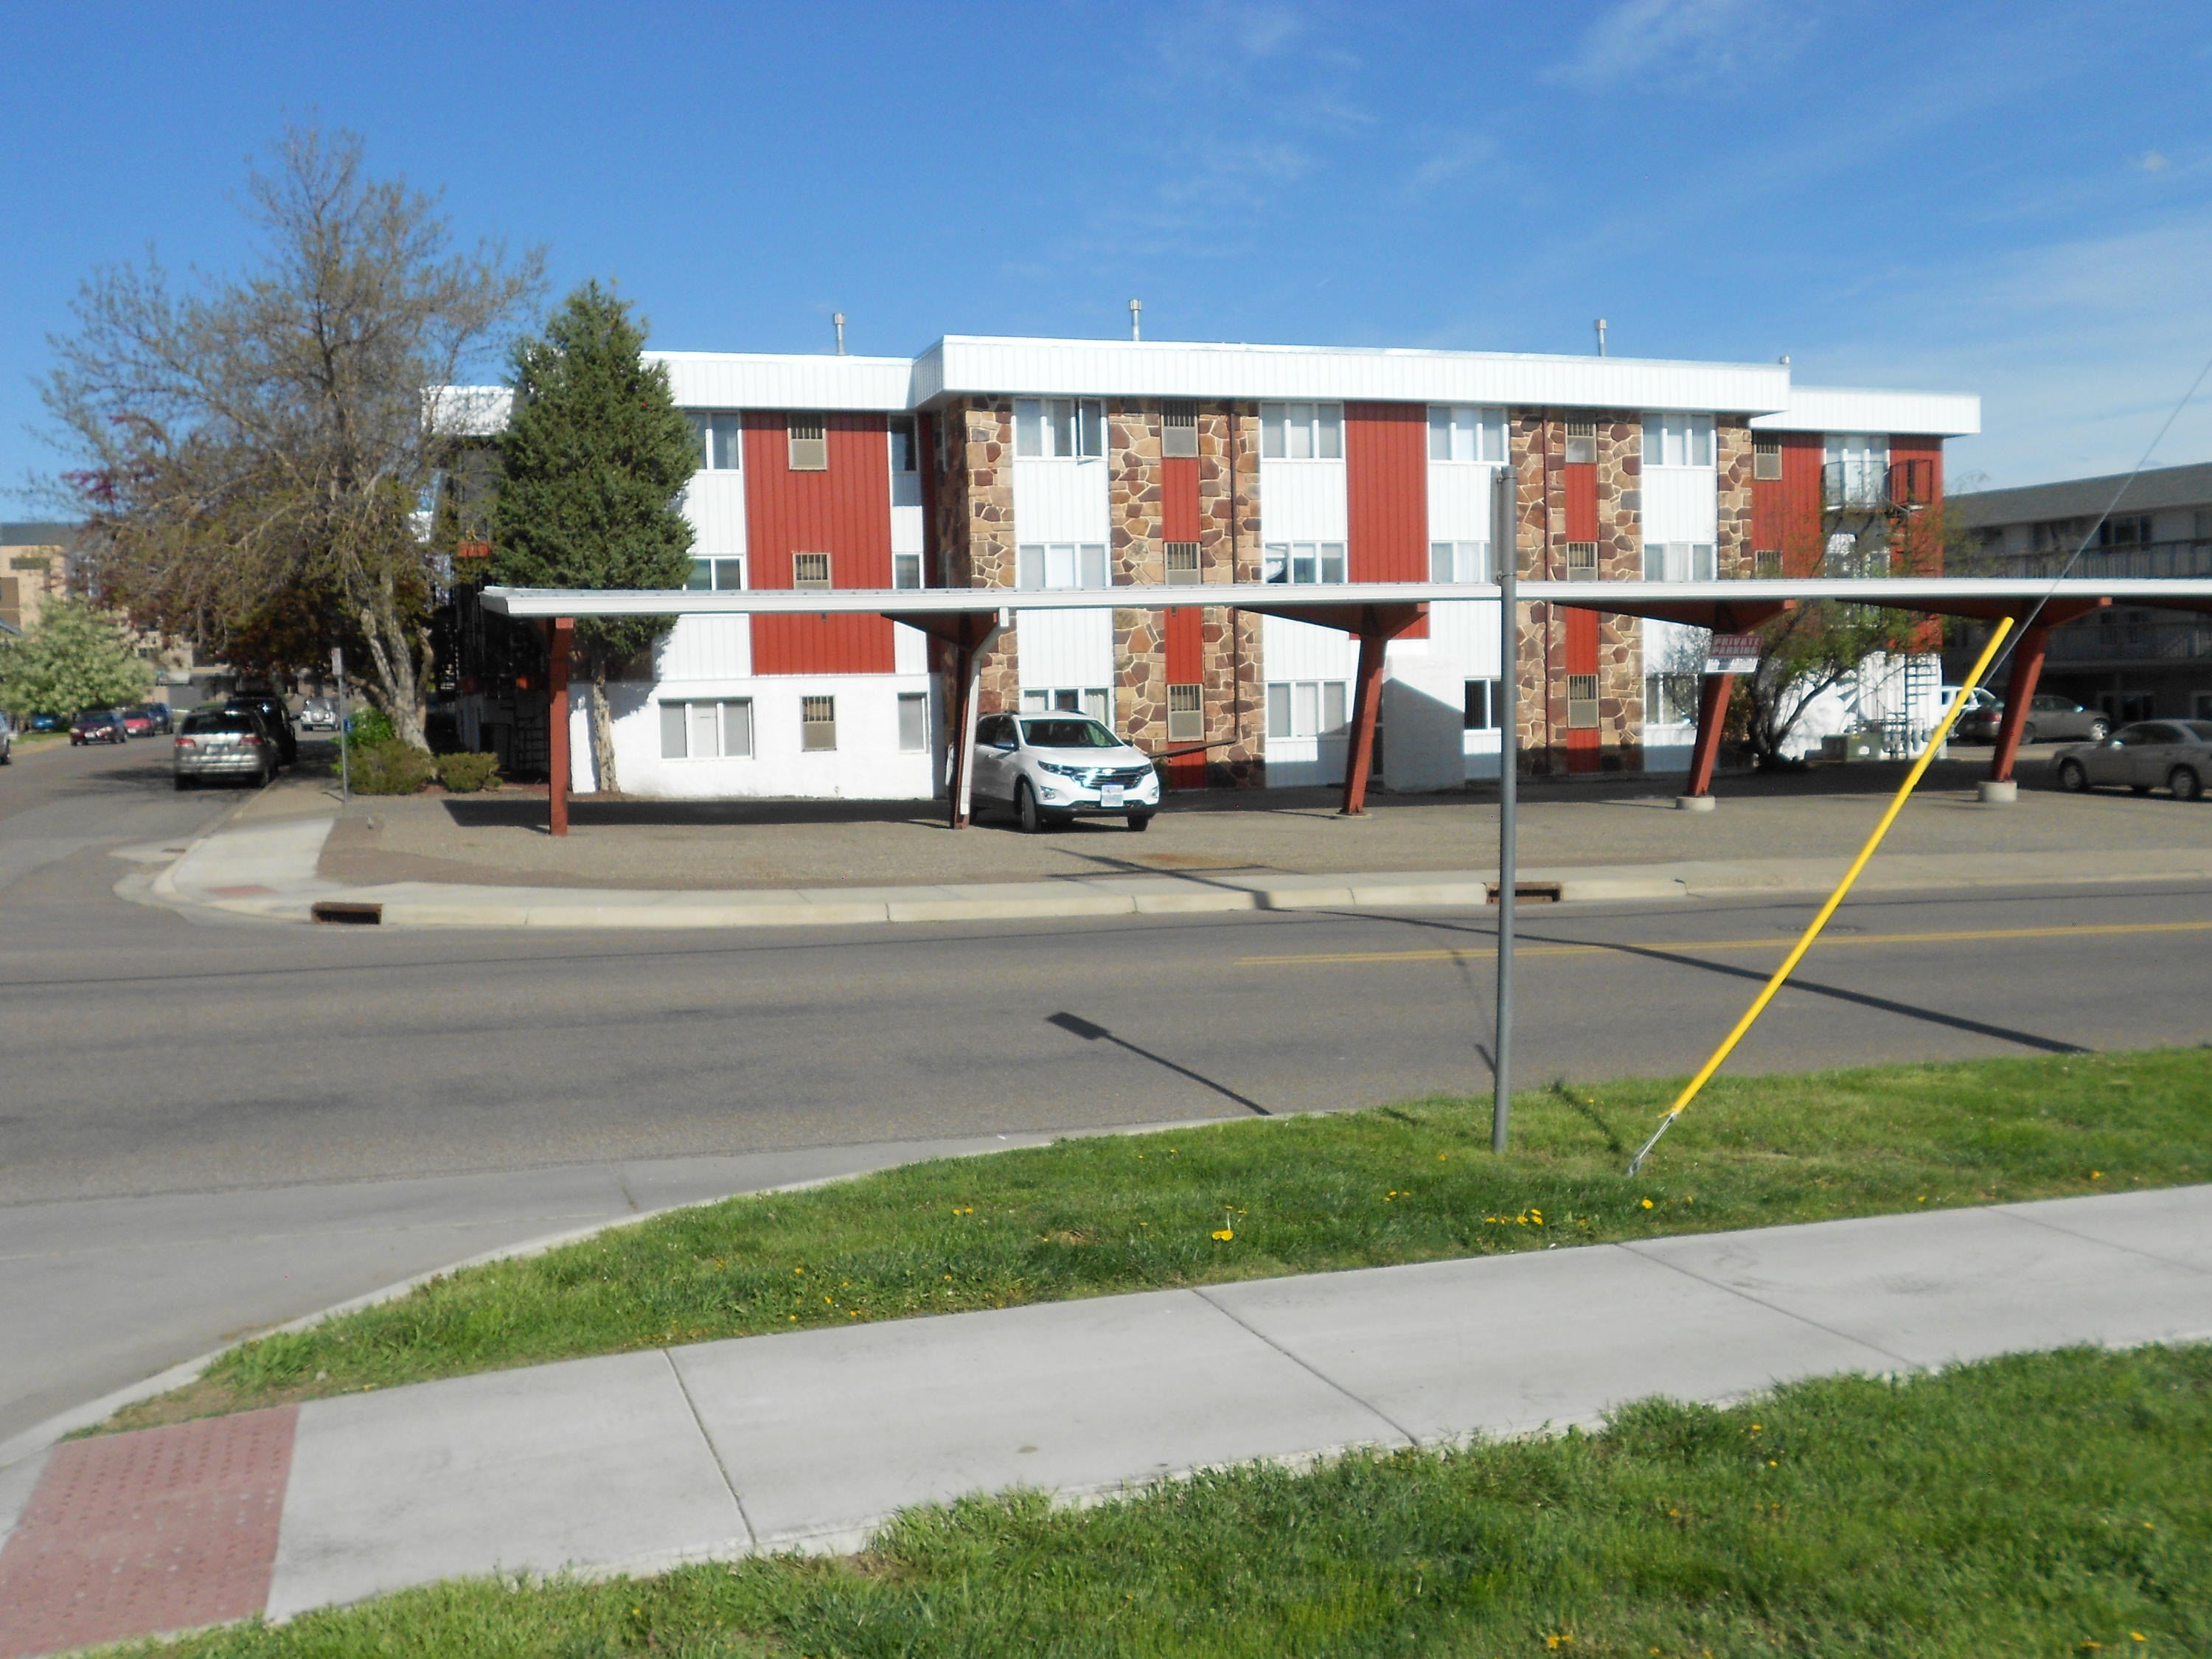 Great opportunity to own a condo that has 2 decks, an indoor parking stall with your own remote, 3 bedrooms one with an ensuite and a 2nd bathroom for everyone else. The laundry is 4 steps out the front door. a couple of blocks to the hospital, banking, grocery stores, etc... Call Ron Dodd at 406-799-2829, or your real estate professional.